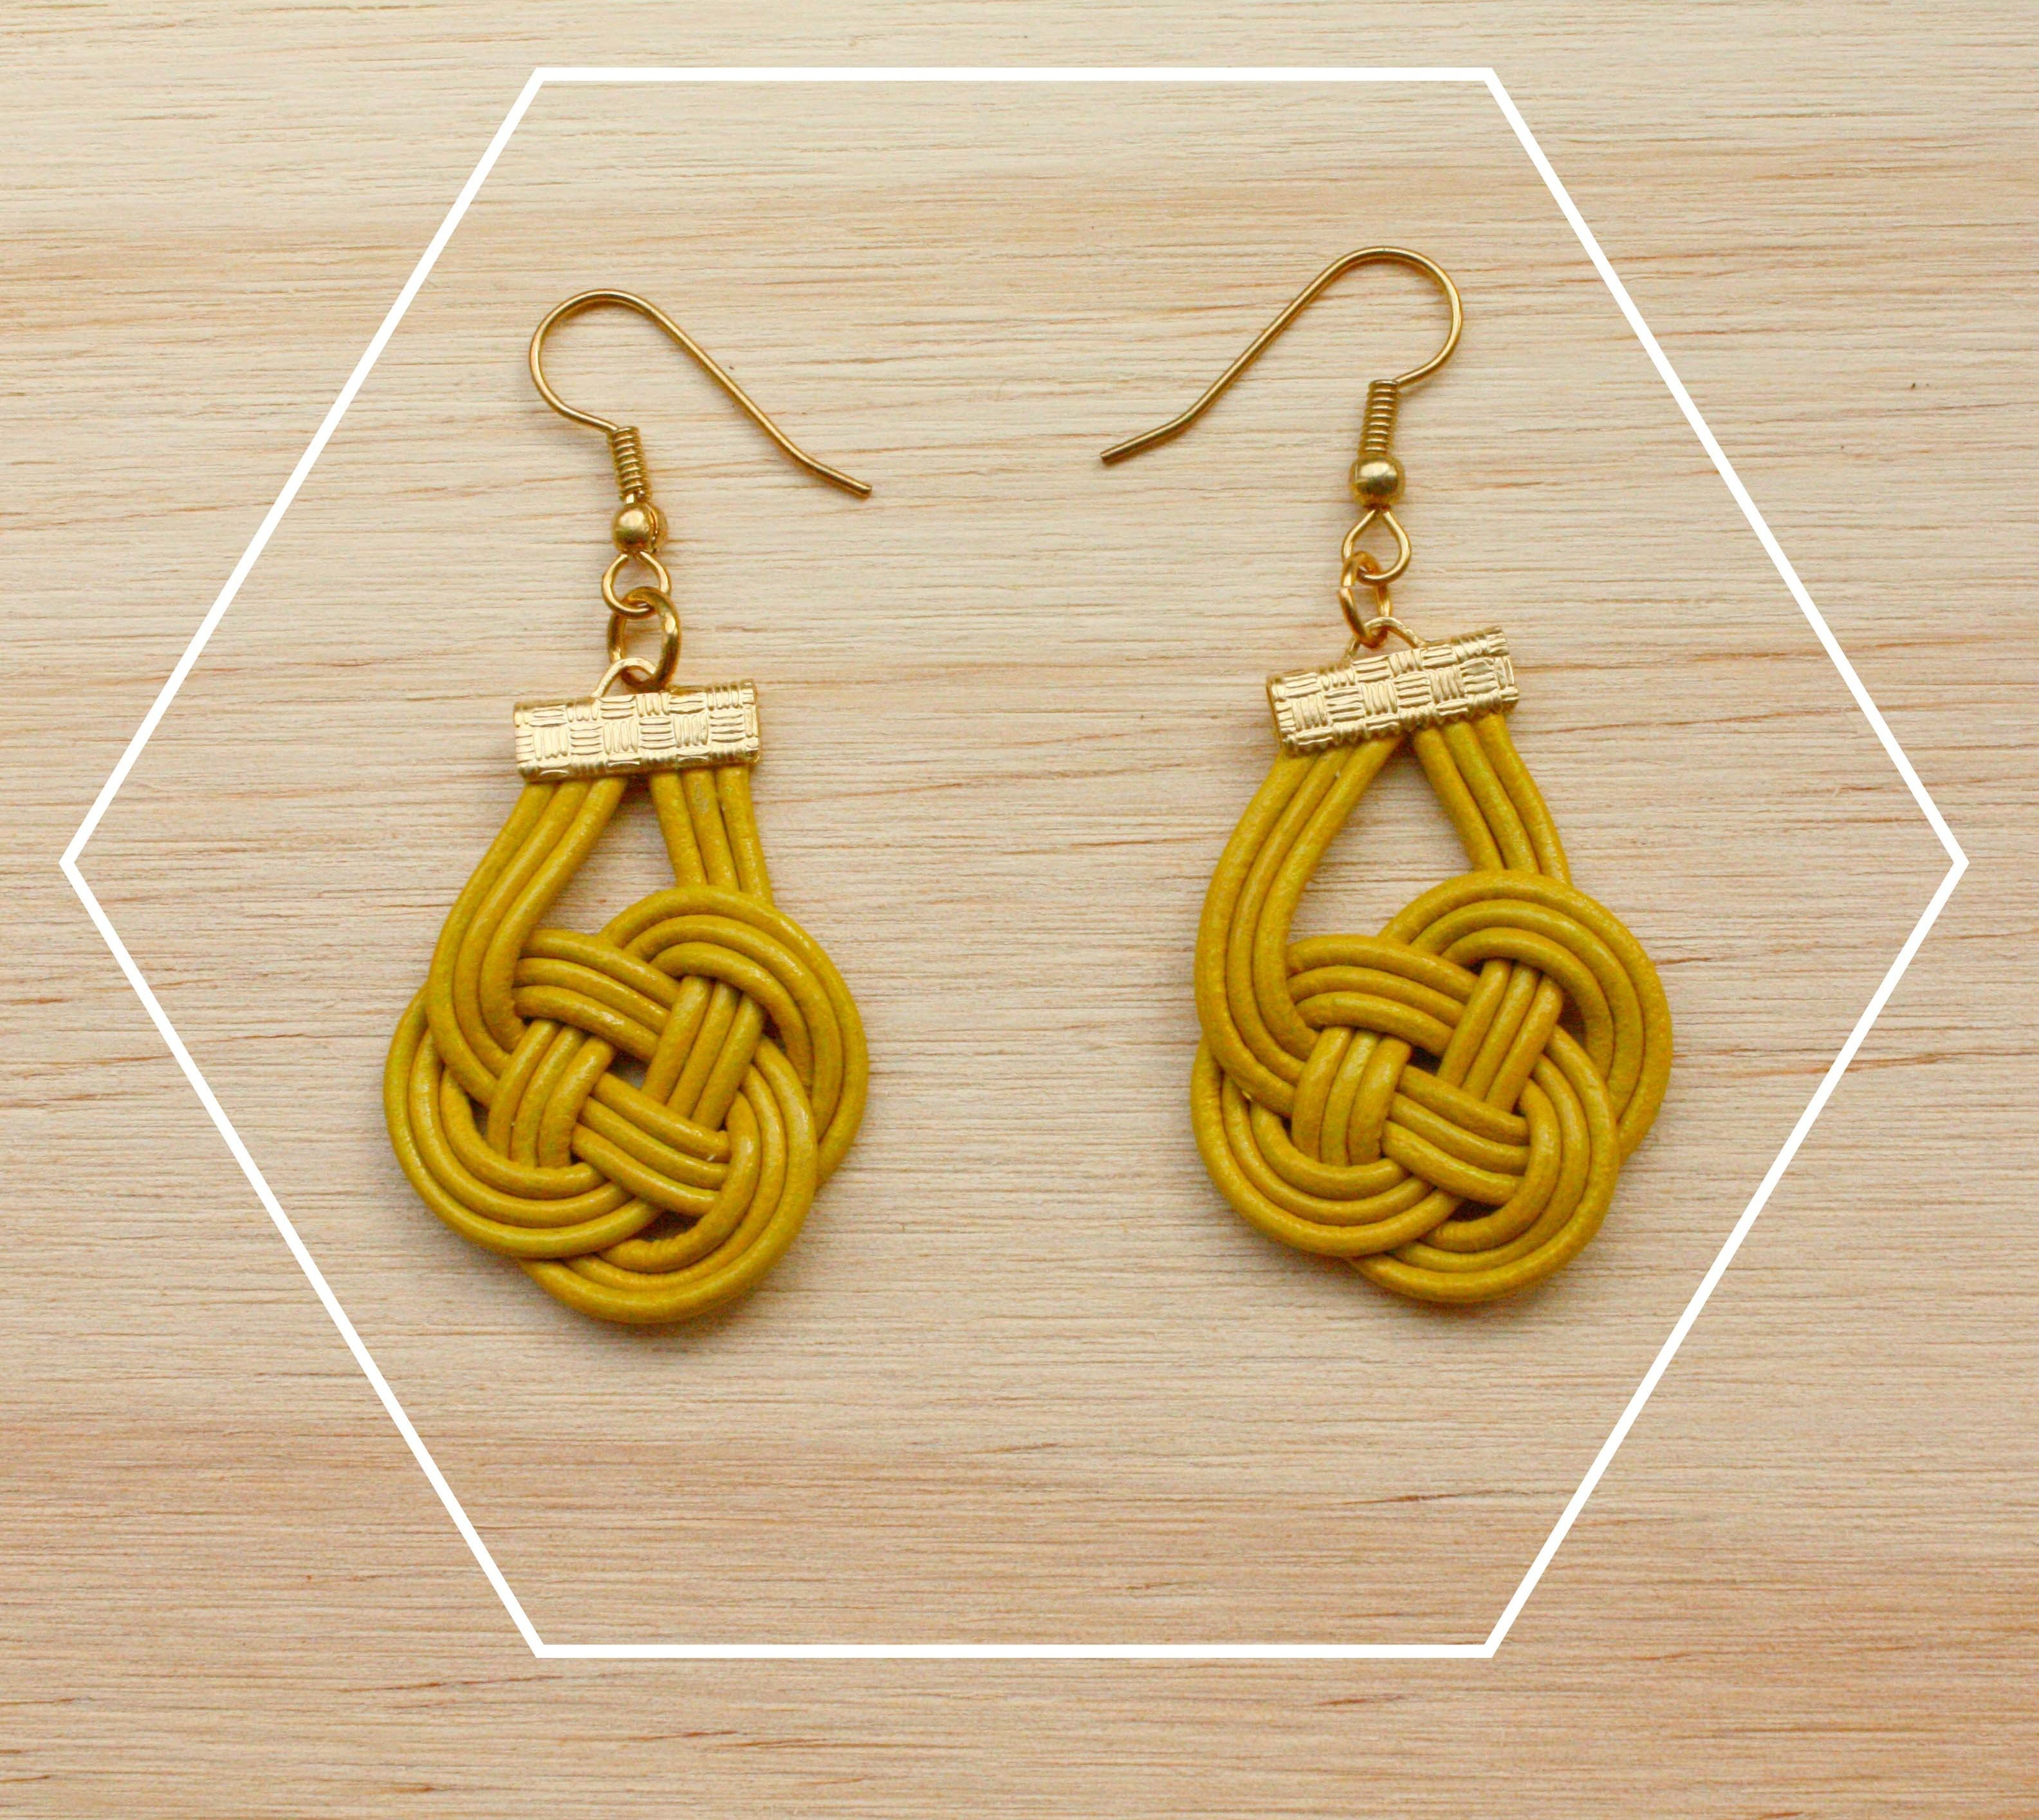 leather cord knotted earrings muntedkowhai